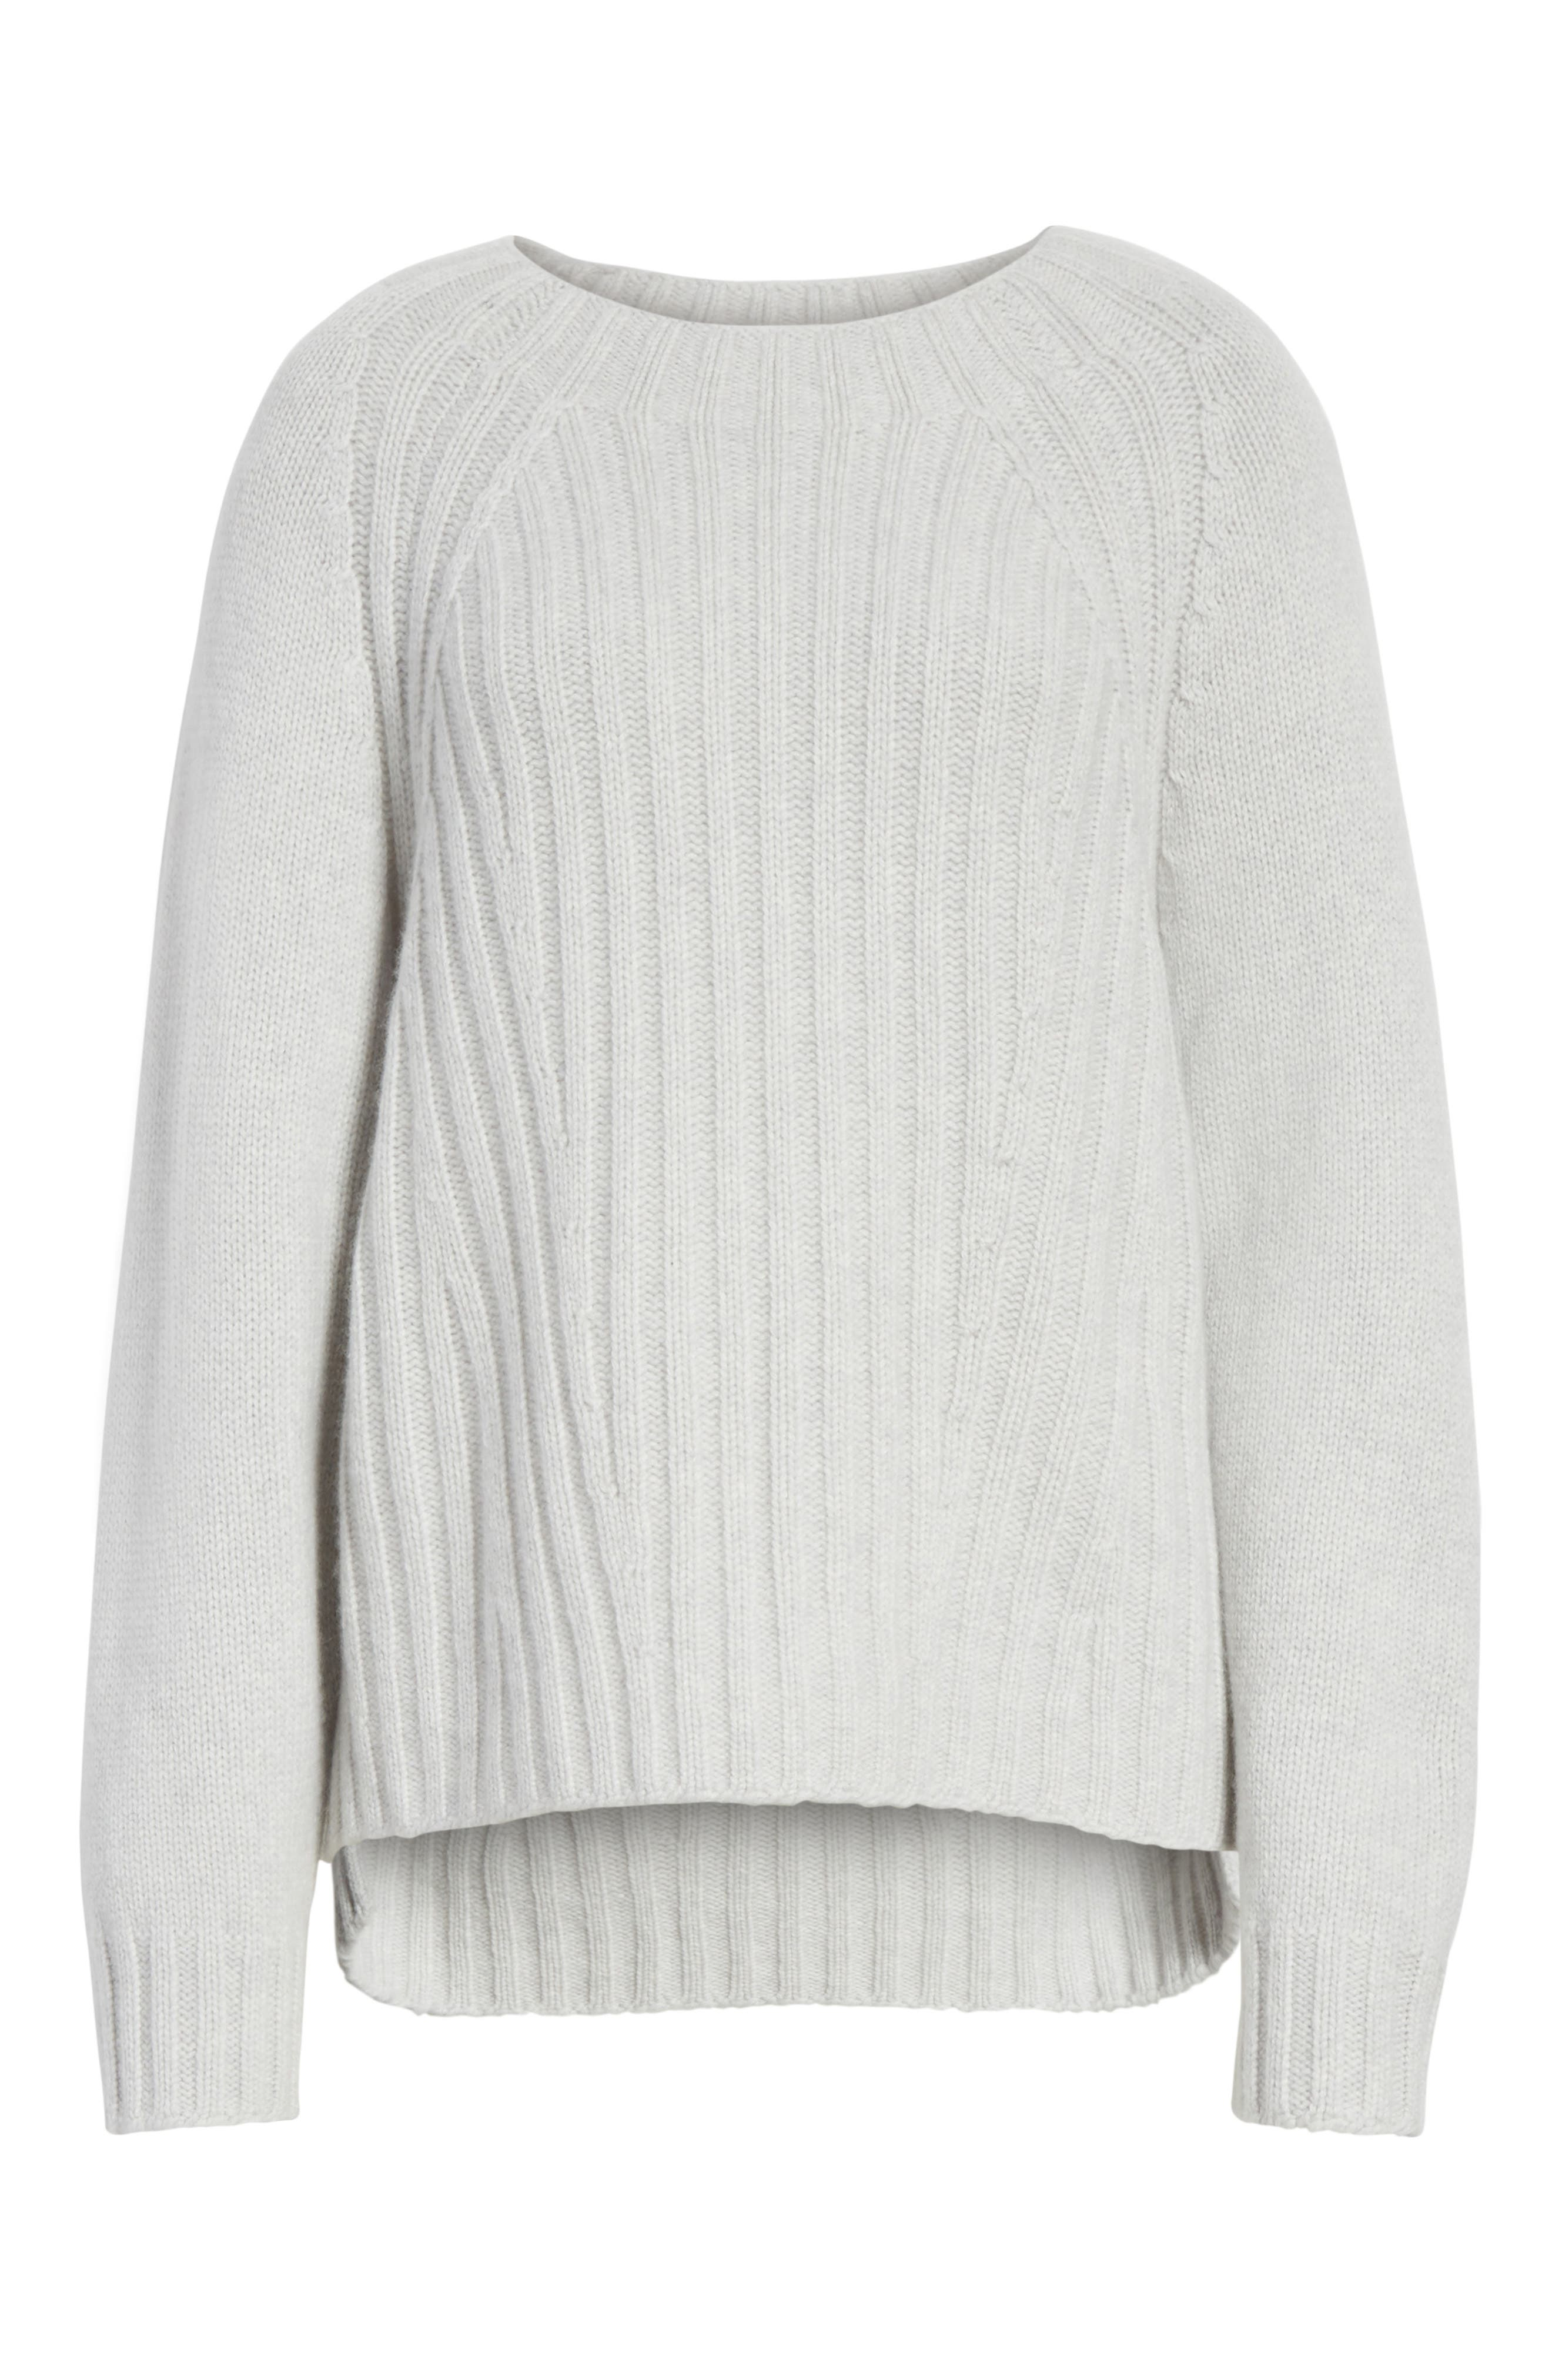 Ribbed Wool & Cashmere Sweater,                             Alternate thumbnail 6, color,                             Light Heather Grey